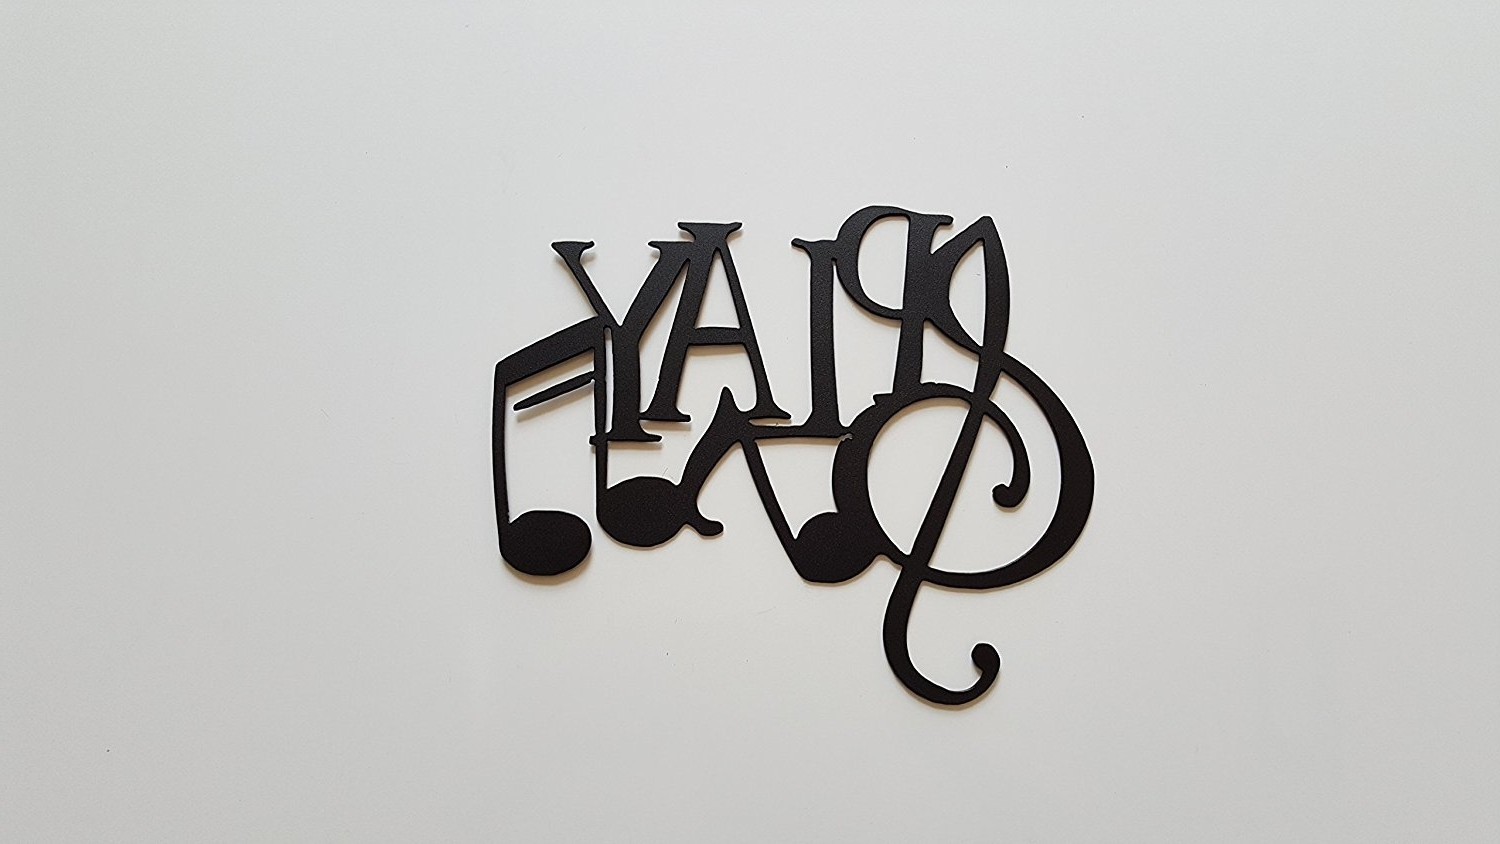 Current Amazon: Play Word And Music Notes Metal Wall Art Decor: Home Throughout Metal Music Notes Wall Art (View 5 of 15)